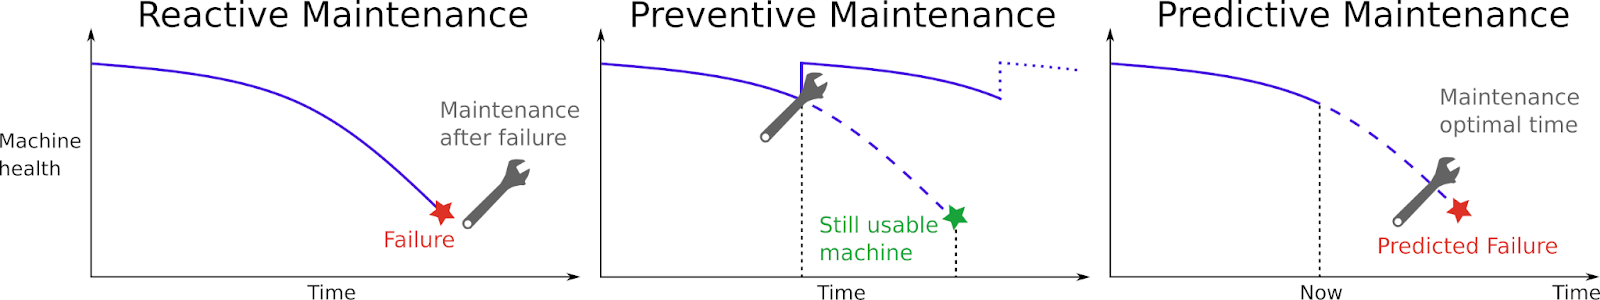 types_of_maintenance, Apache Spark machine learning